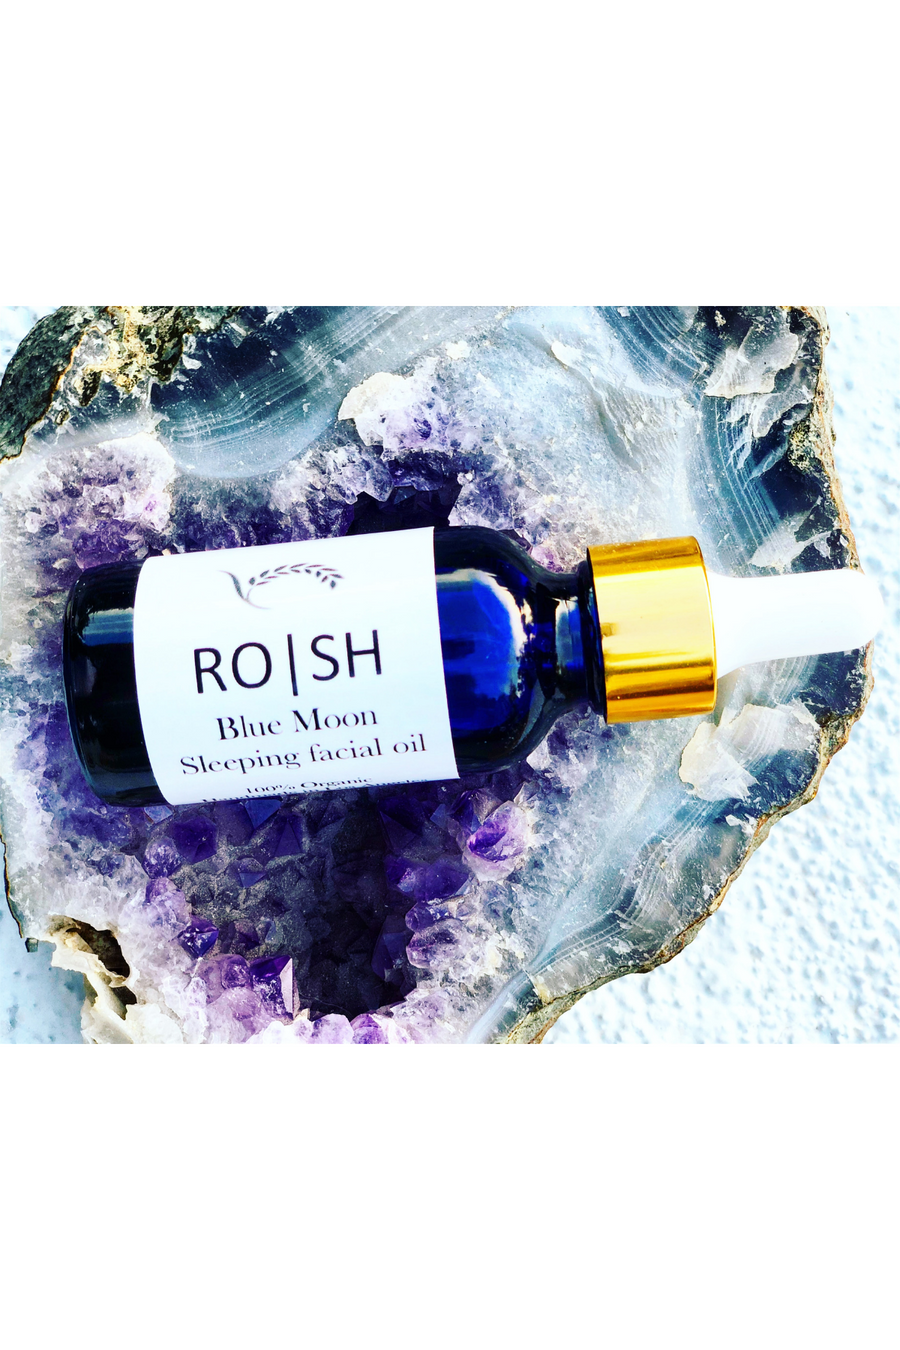 ROSH ORGANICS Blue Moon Sleeping Oil Serum